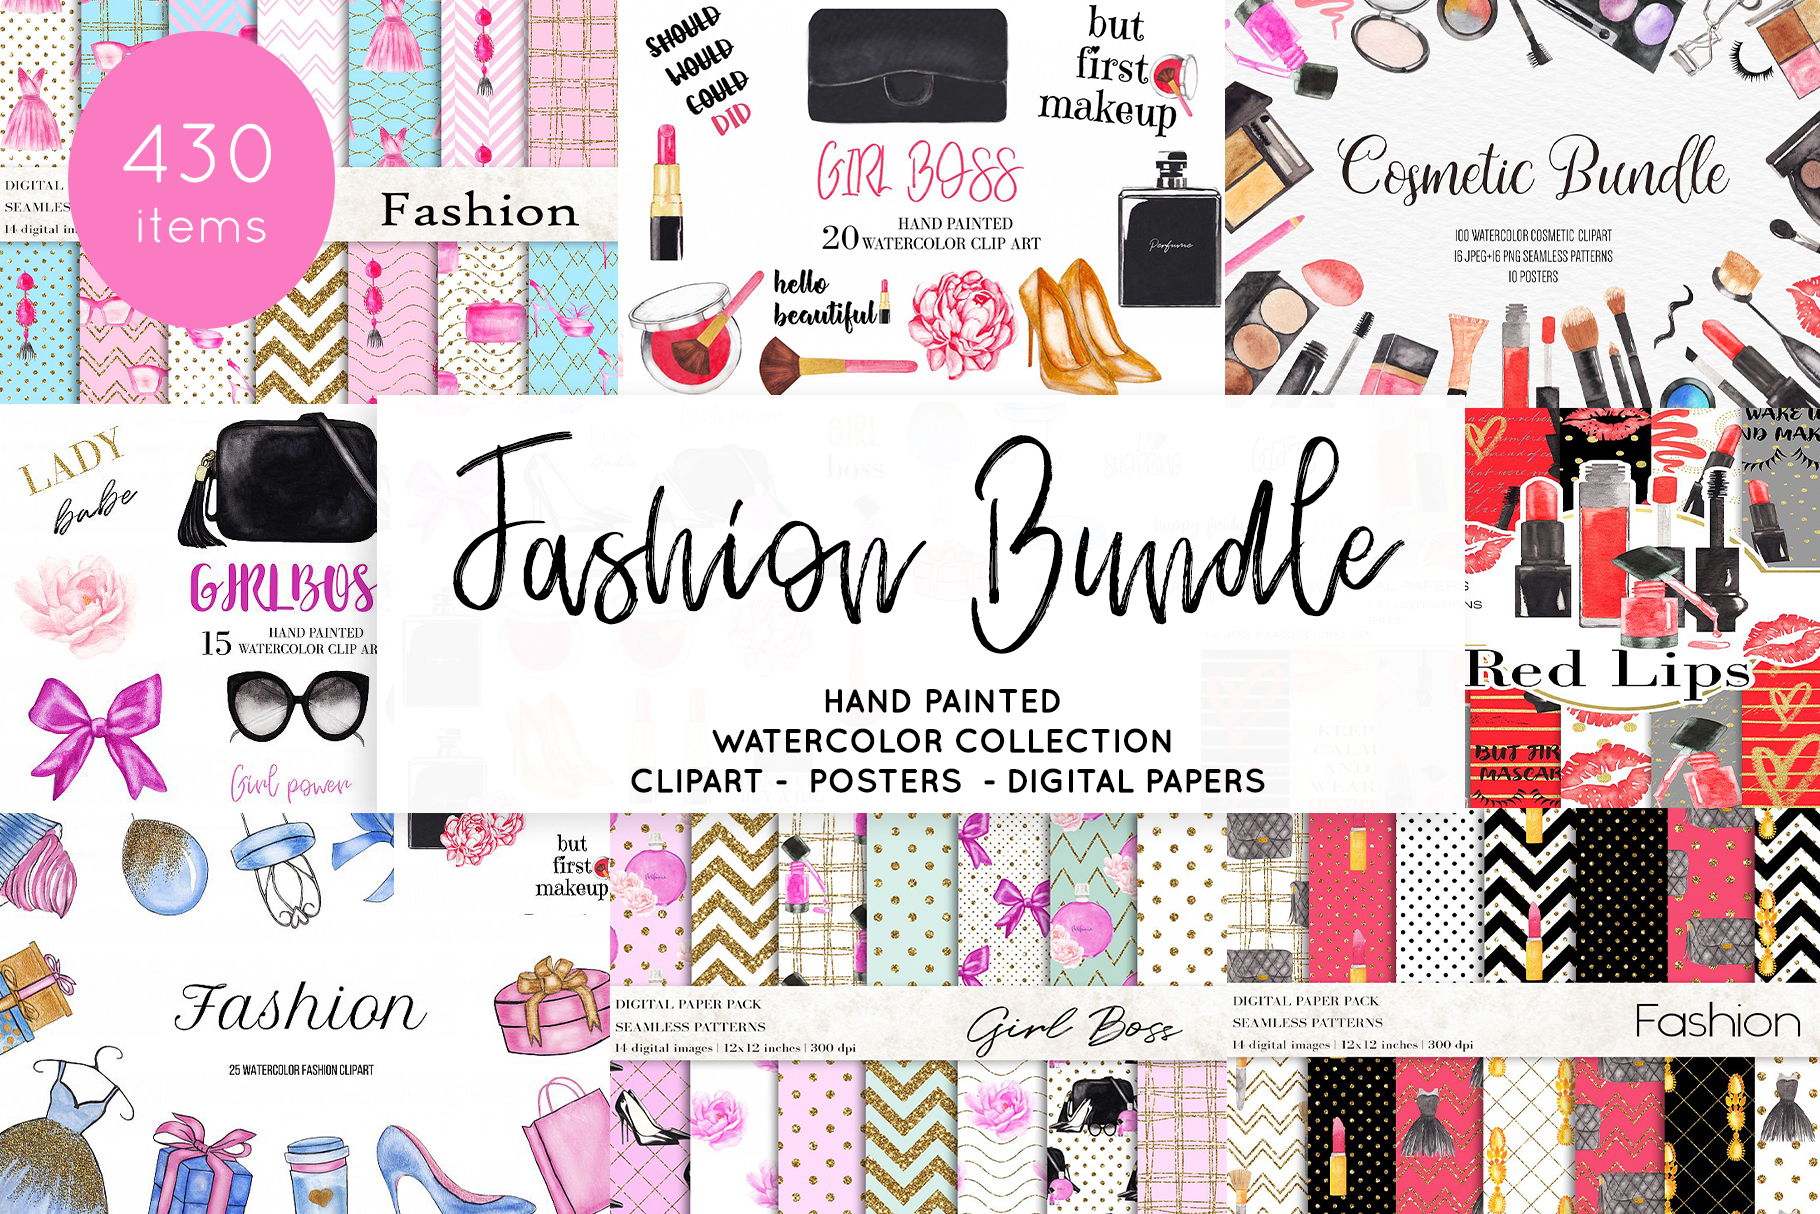 Download Free Watercolor Fashion Makeup Bundle Graphic By Bonadesigns for Cricut Explore, Silhouette and other cutting machines.